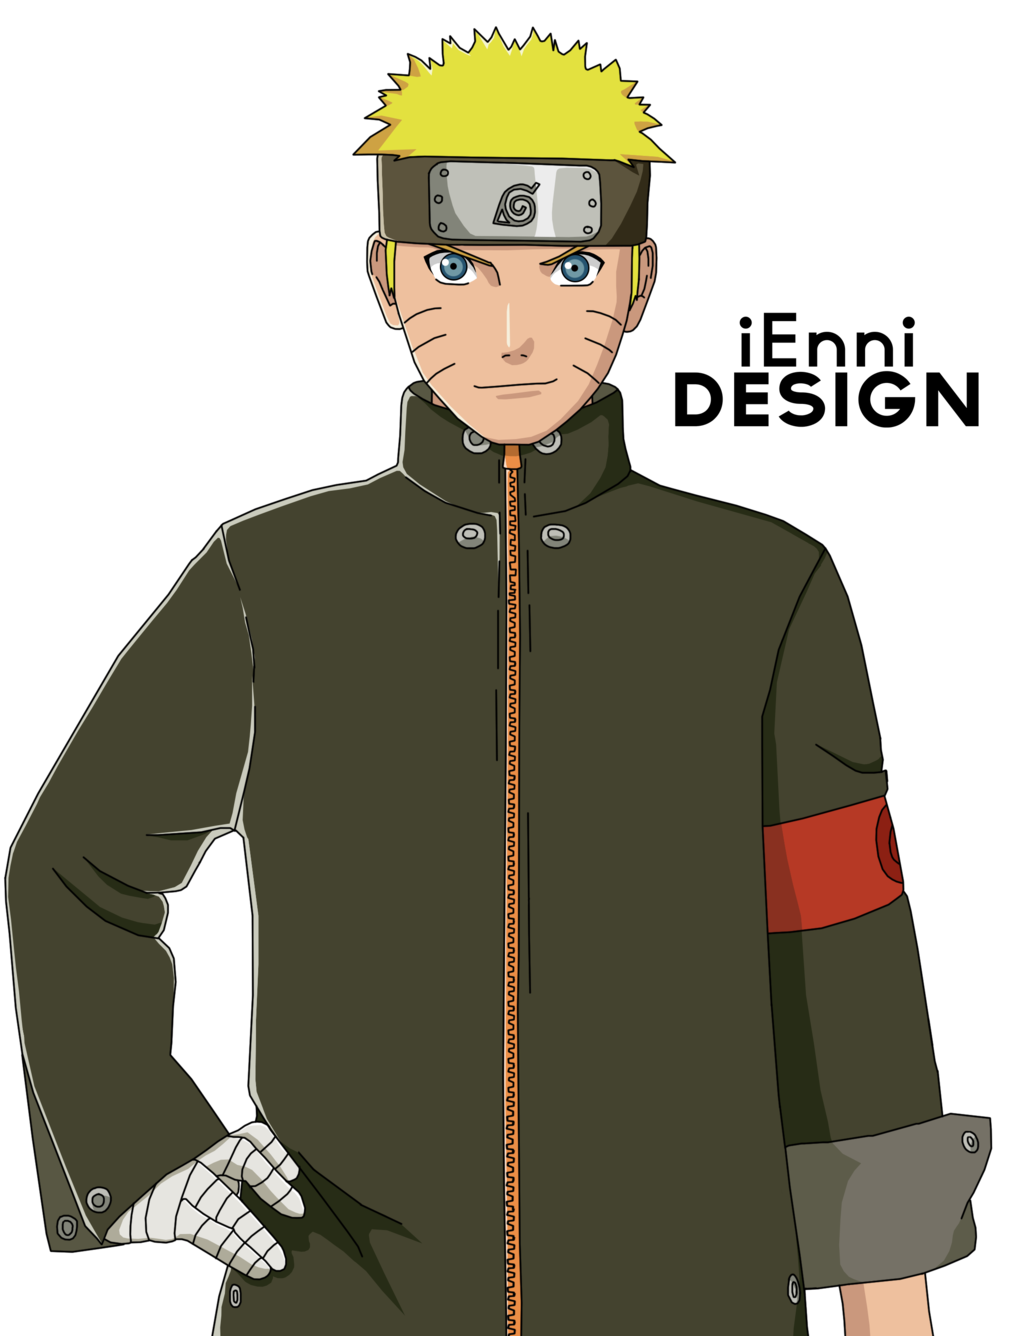 Naruto The Last Transparent Image PNG Image